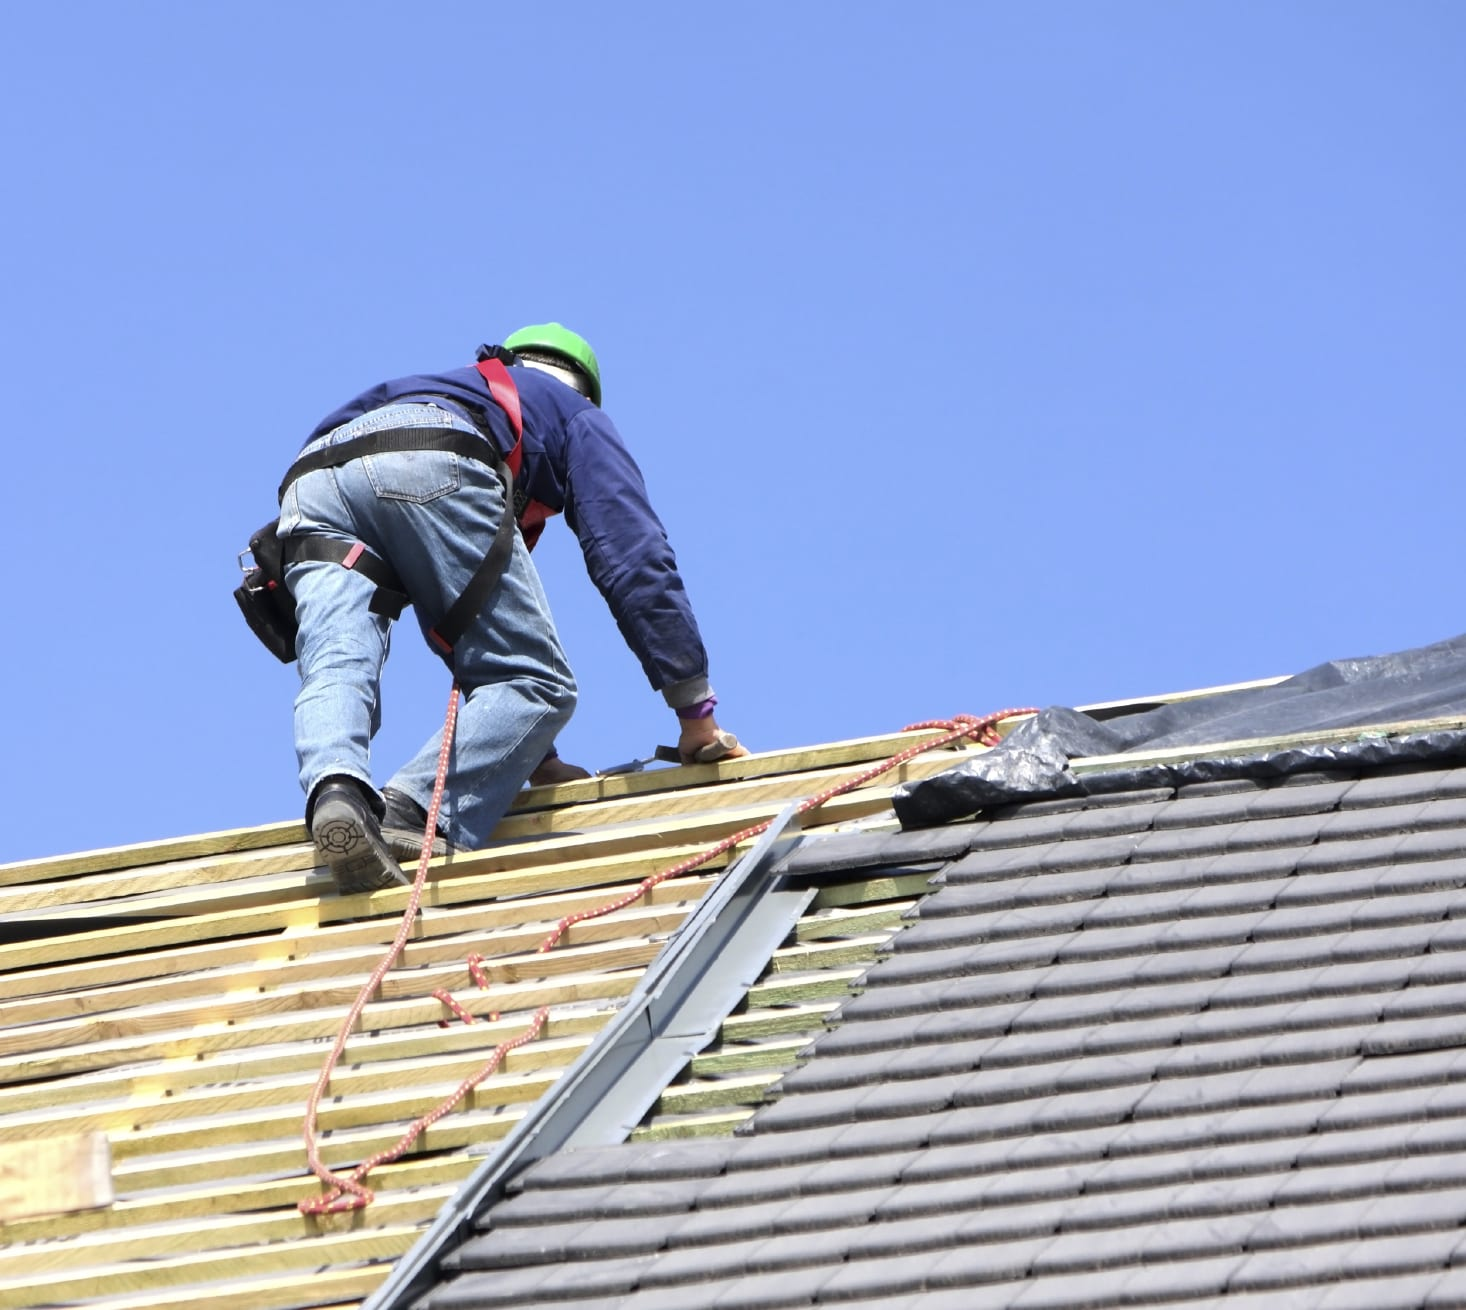 Roofer Repairing The Roof Of A Home Stock Photo